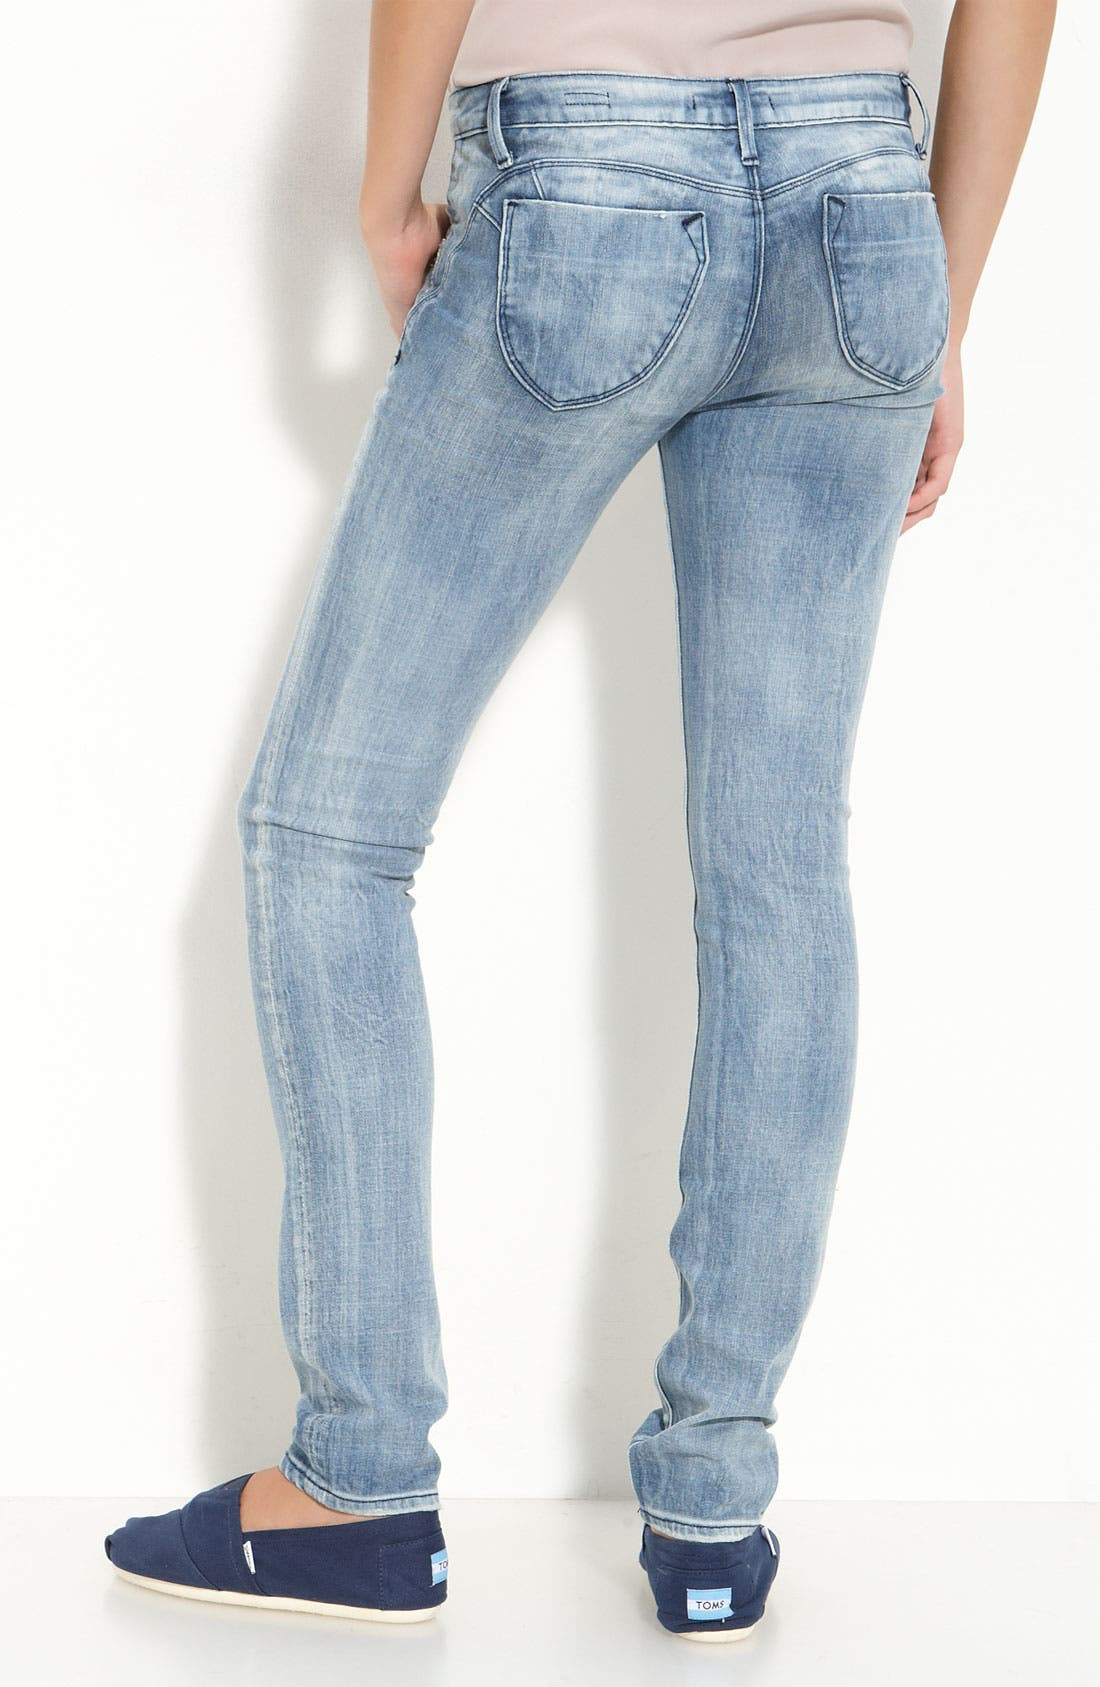 Alternate Image 1 Selected - Vigoss '88' Stretch Denim Skinny Jeans (Light Wash) (Juniors)